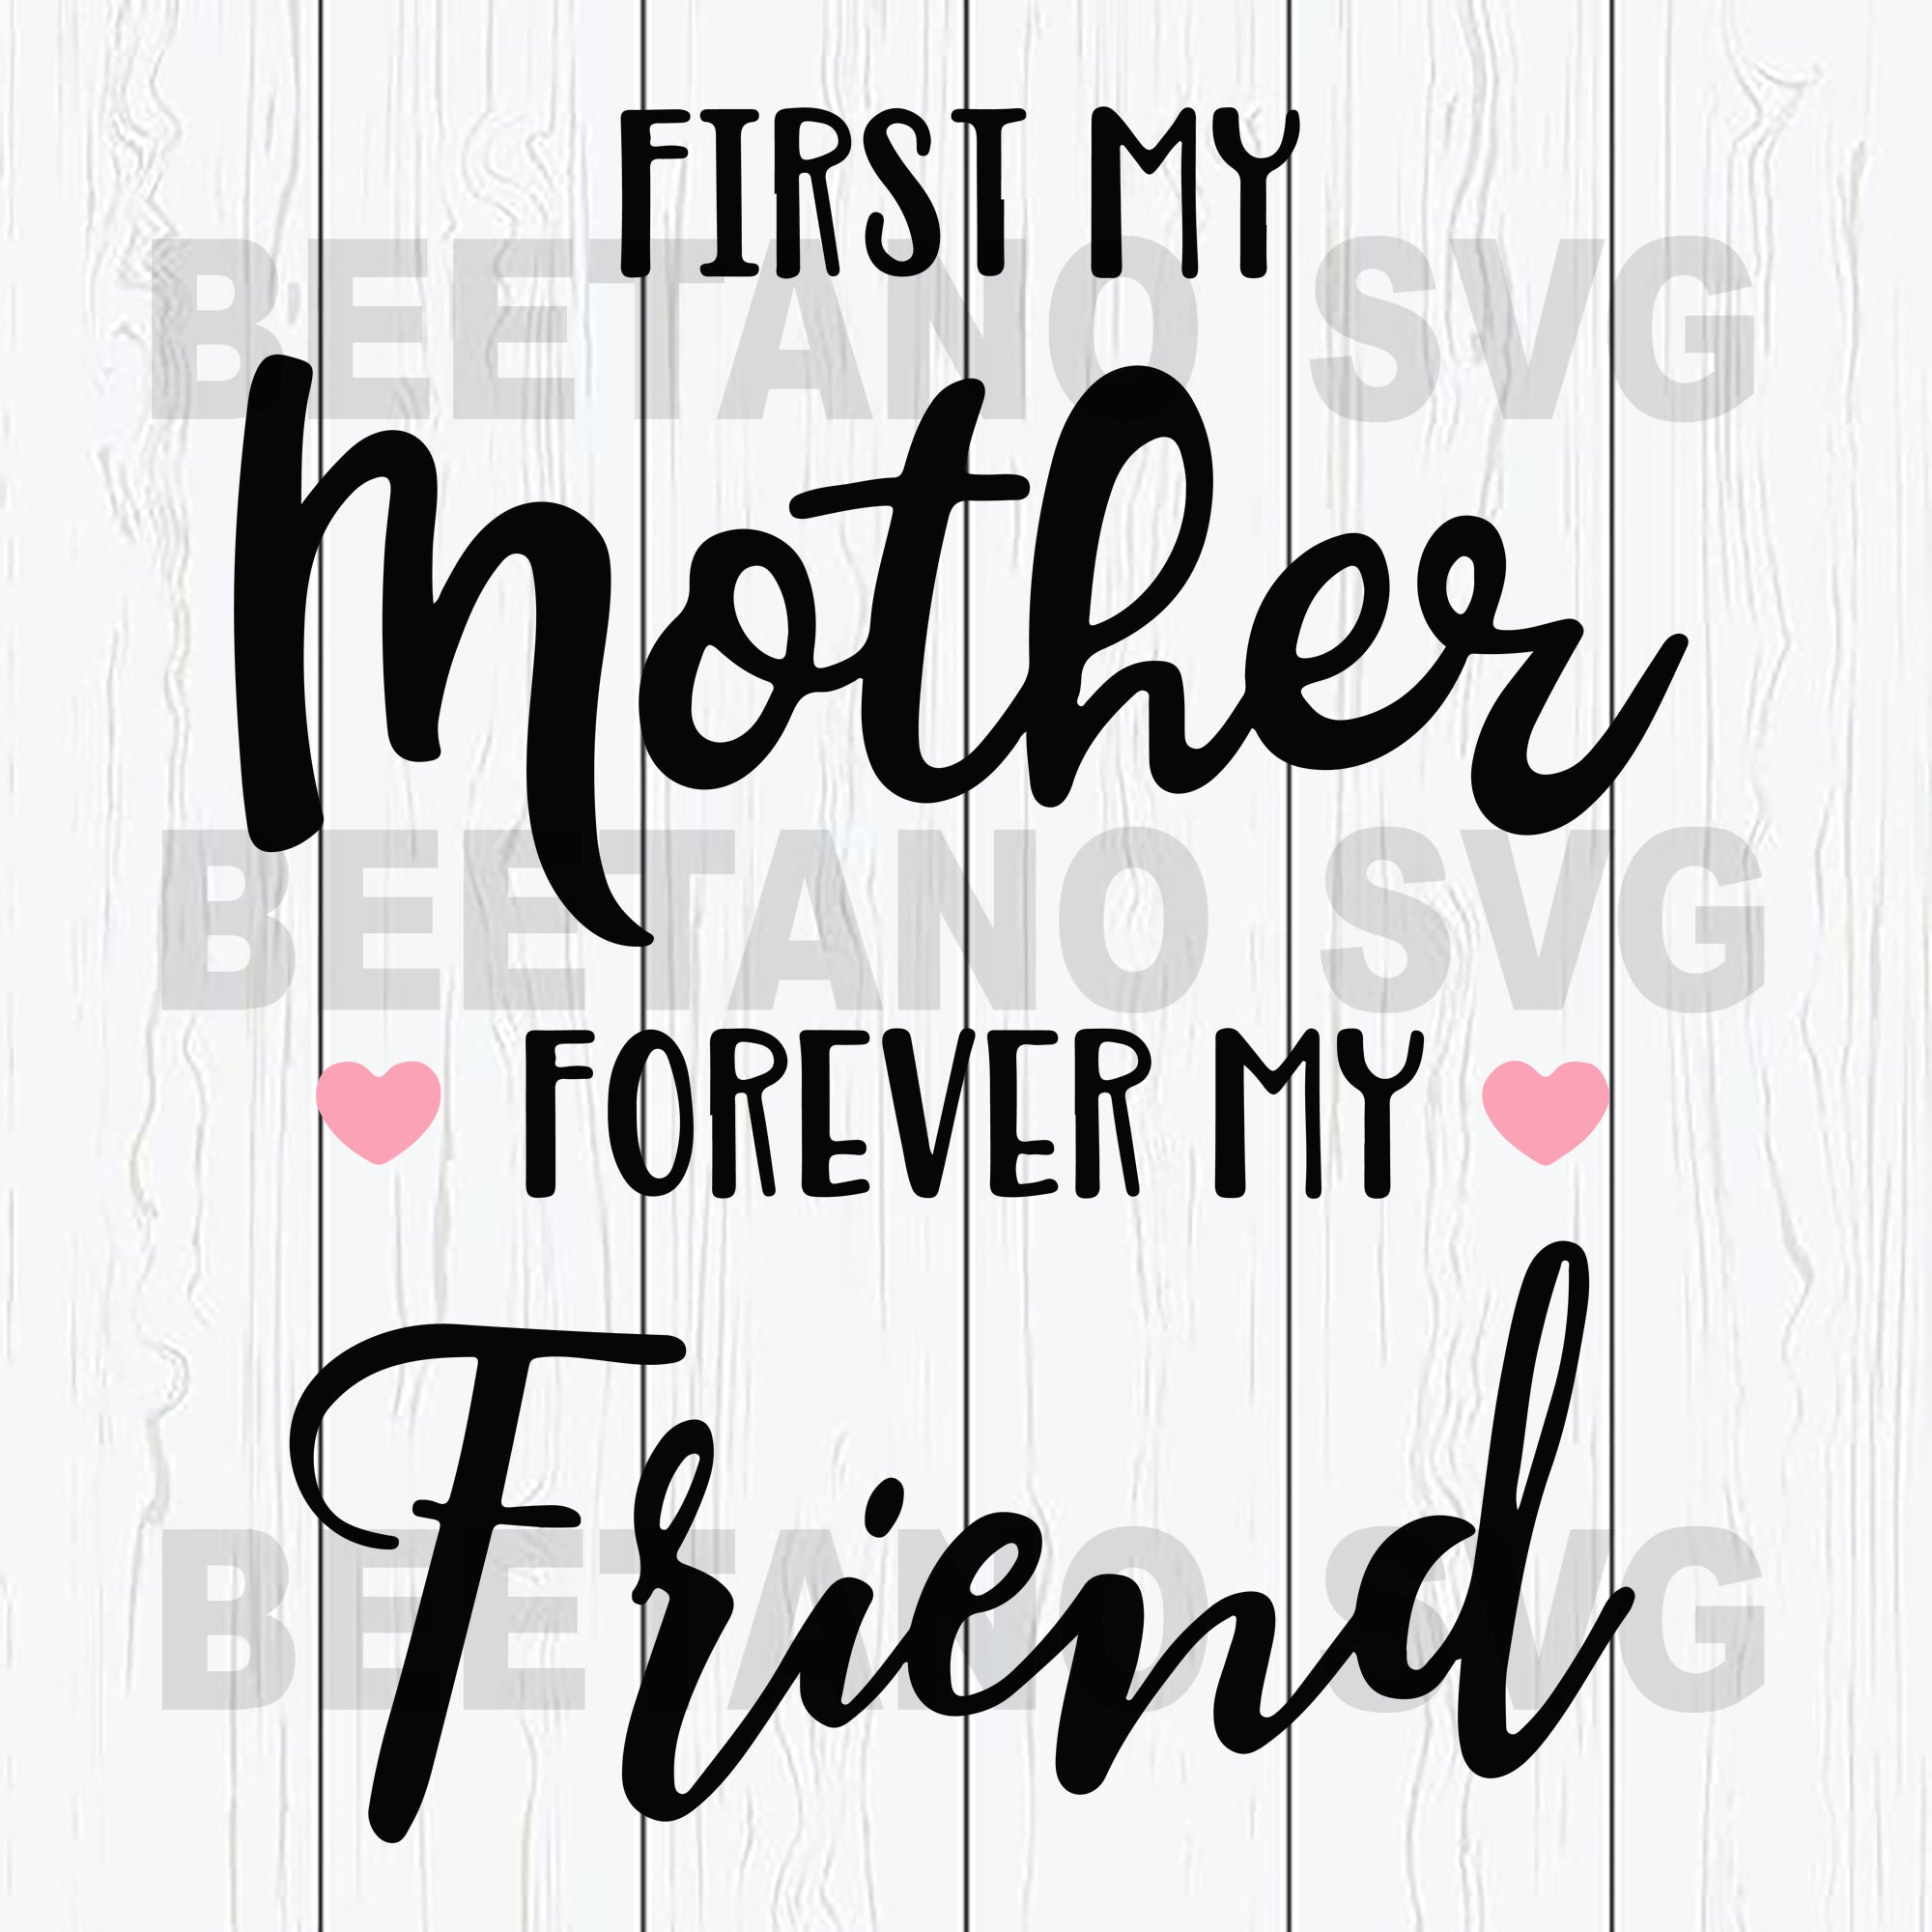 First My Mother Forever My Friend Svg Files, Mother Svg, Happy Mother's Day Svg Files